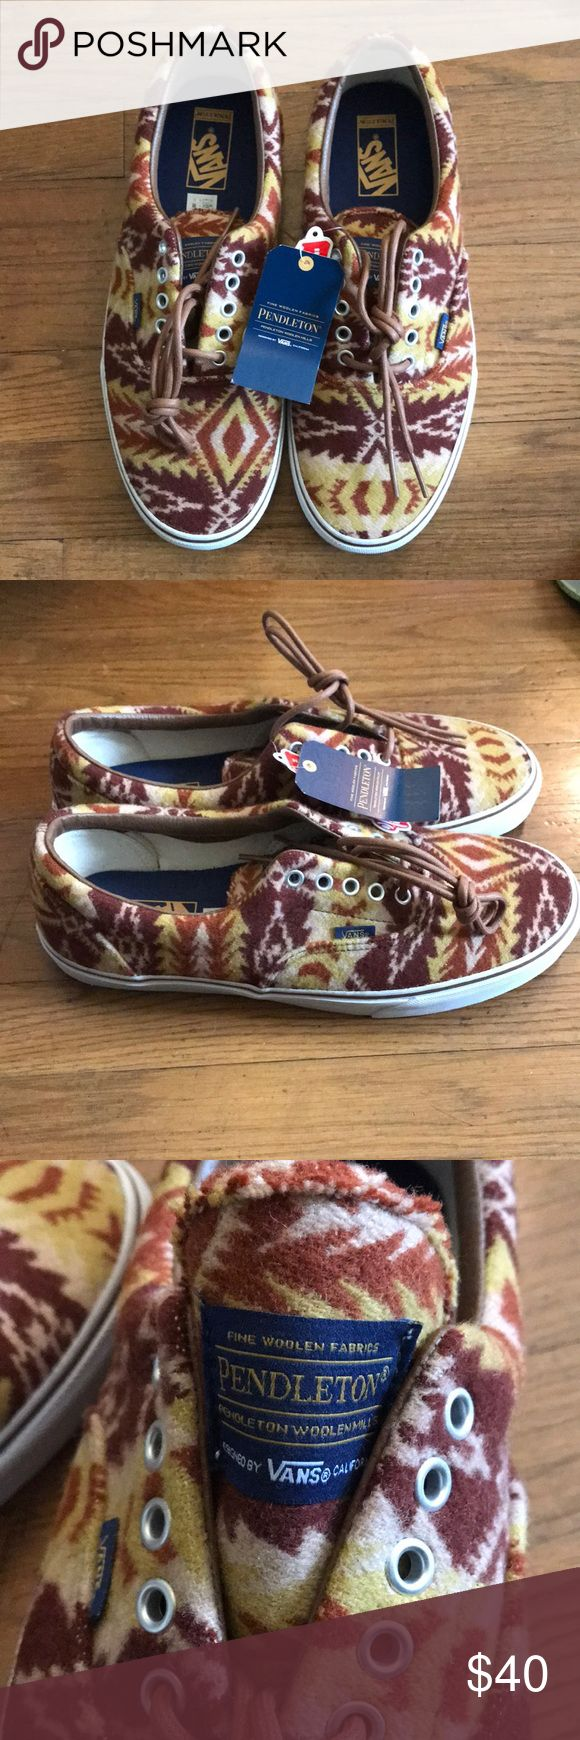 Pendleton Vans size 11.5 Pendleton edition Vans in size 11.5. Never worn or tried on. Vans Shoes Sneakers